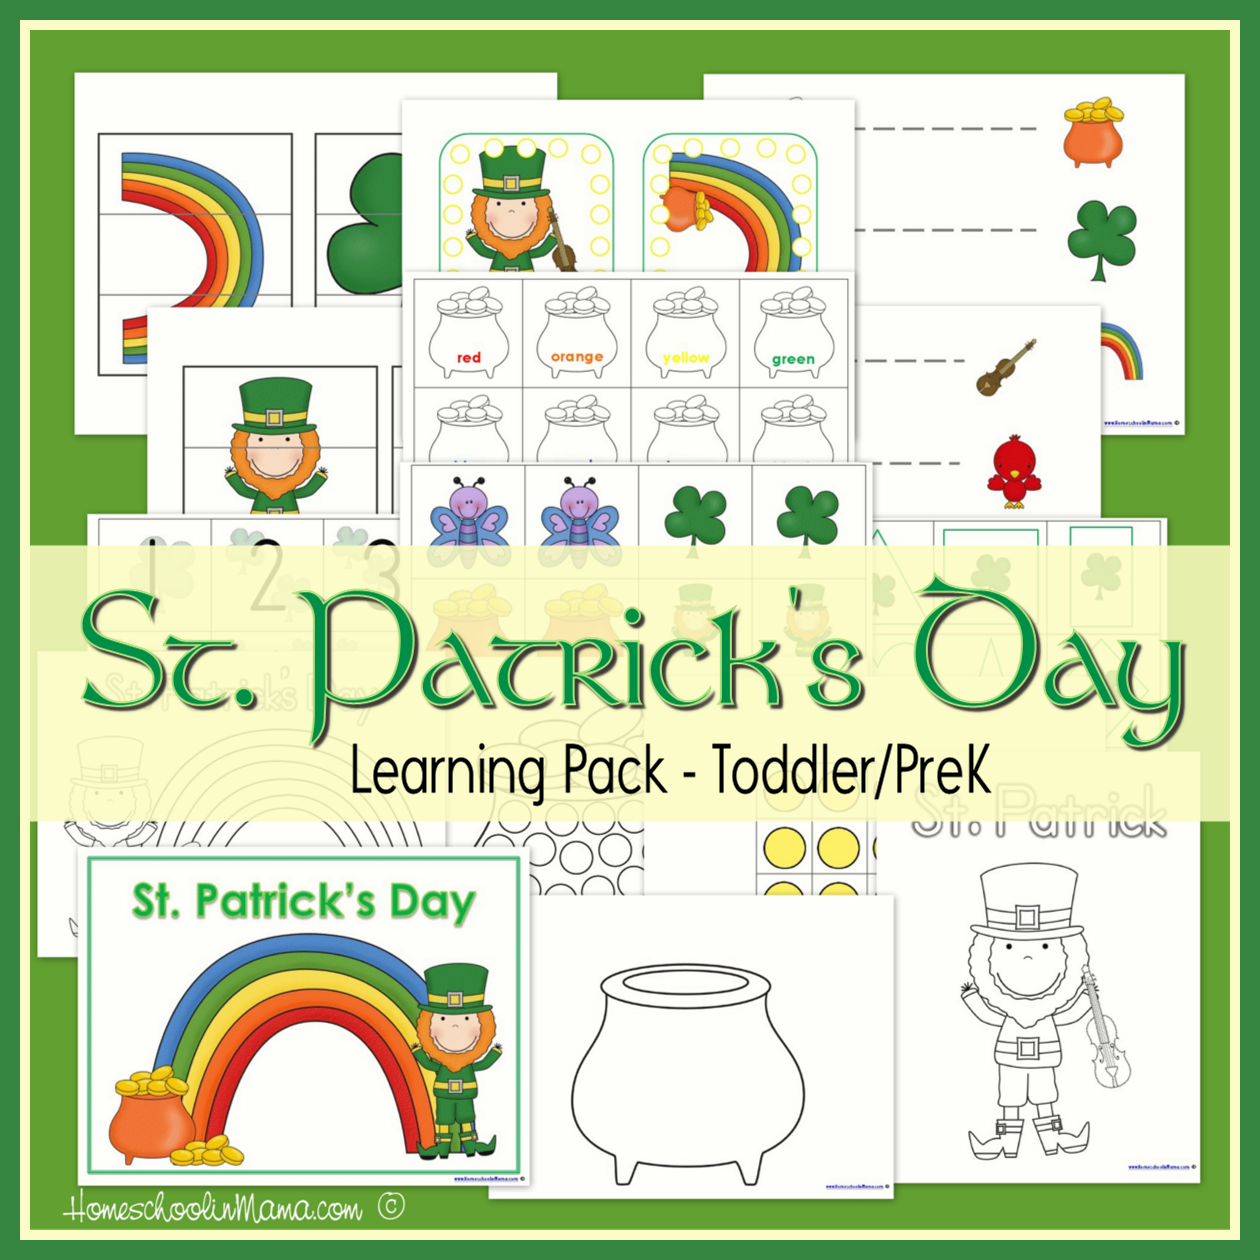 St Patrick S Day Learning Packs St Patricks Theme St Patrick S Day Crafts Printable Activities For Kids [ 1260 x 1260 Pixel ]